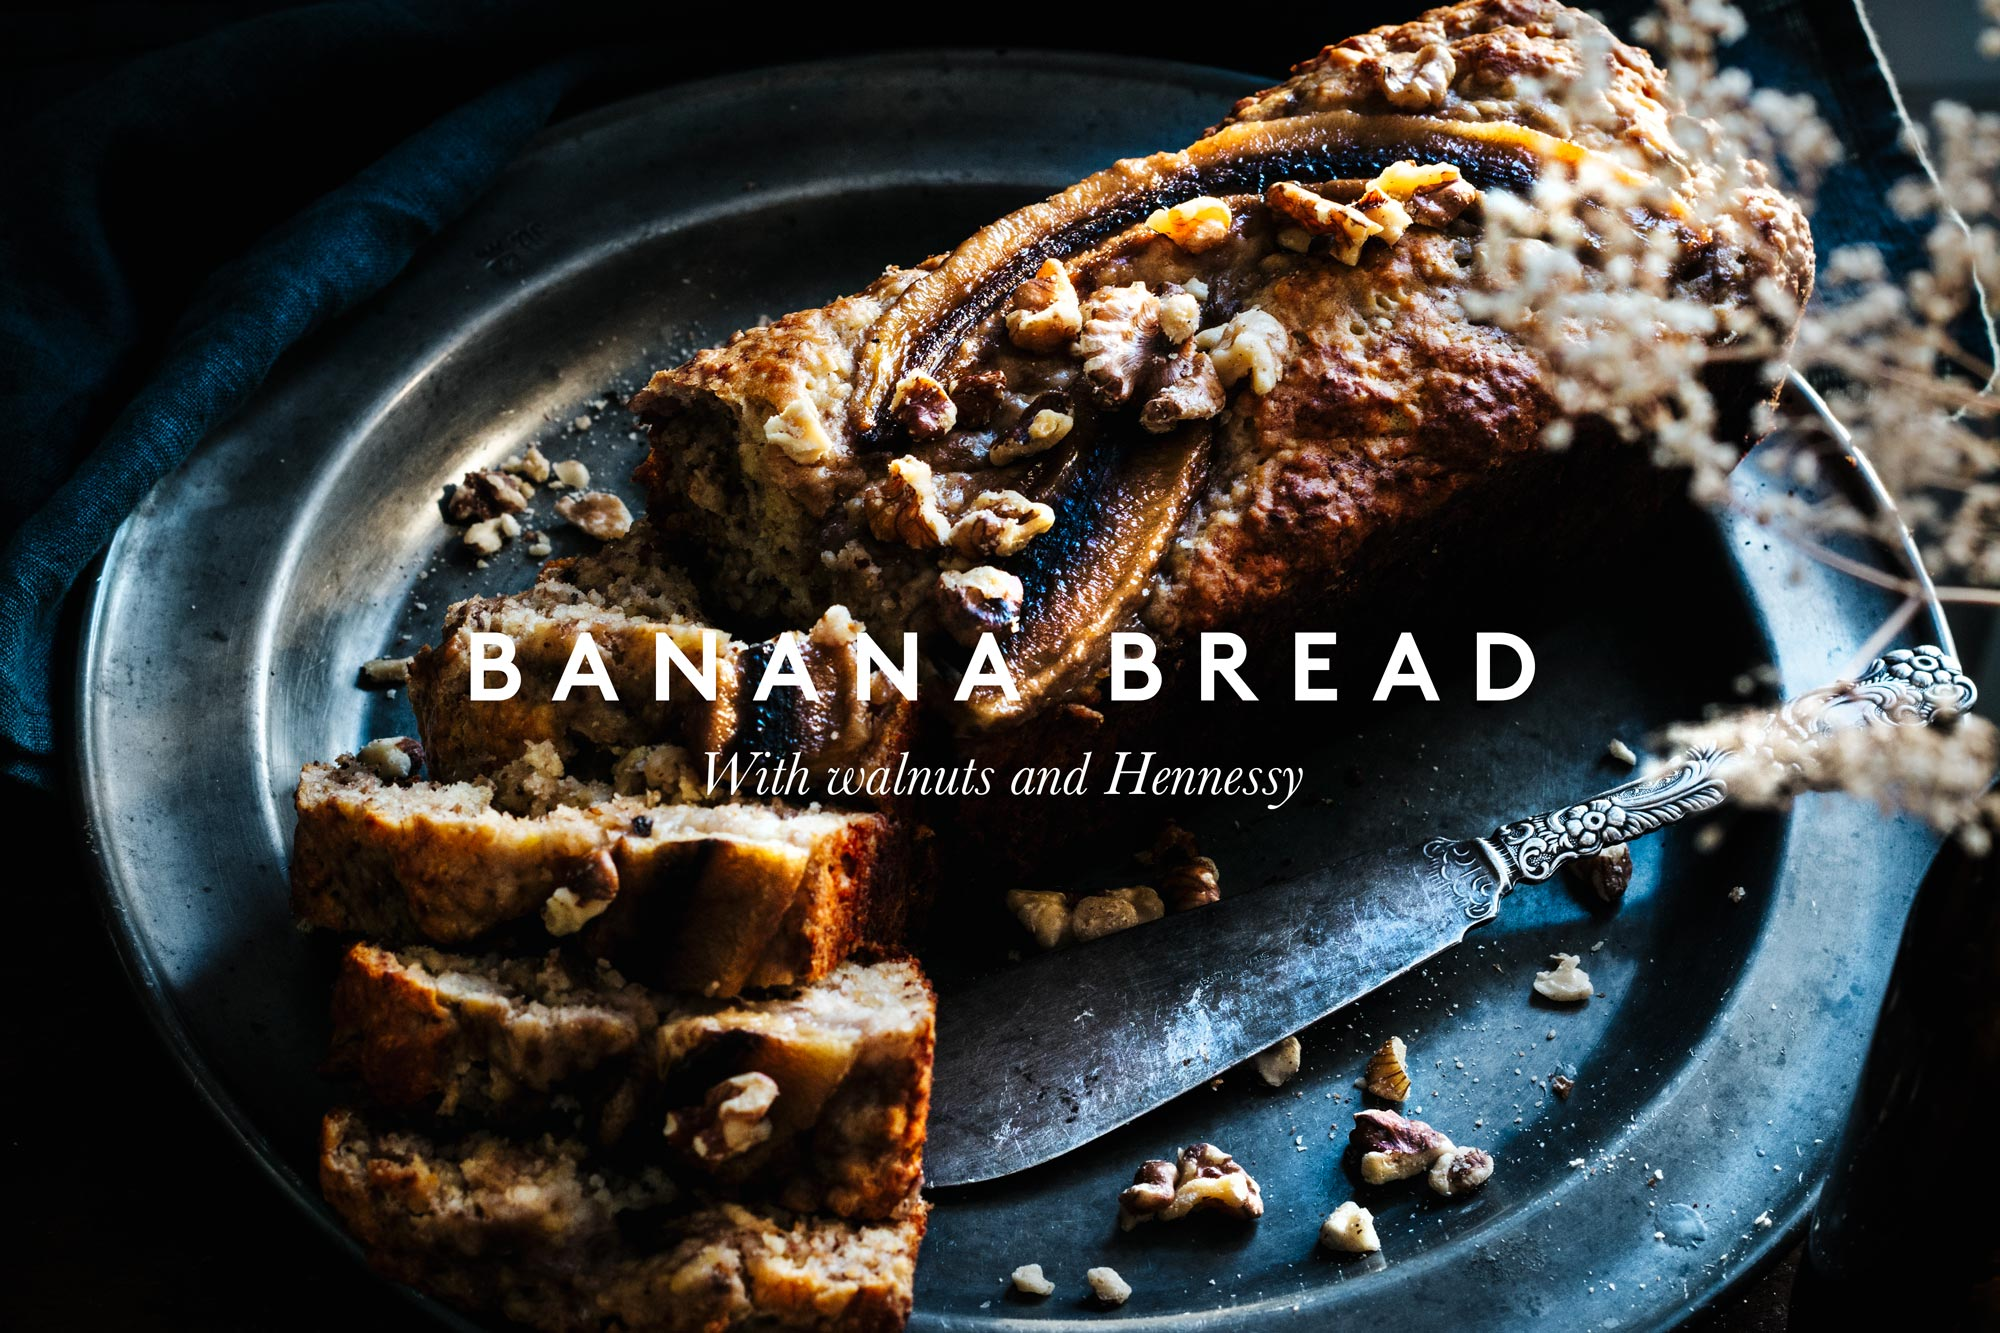 Banana bread with walnuts and hennessy by ploppestable Petter Bäcklund